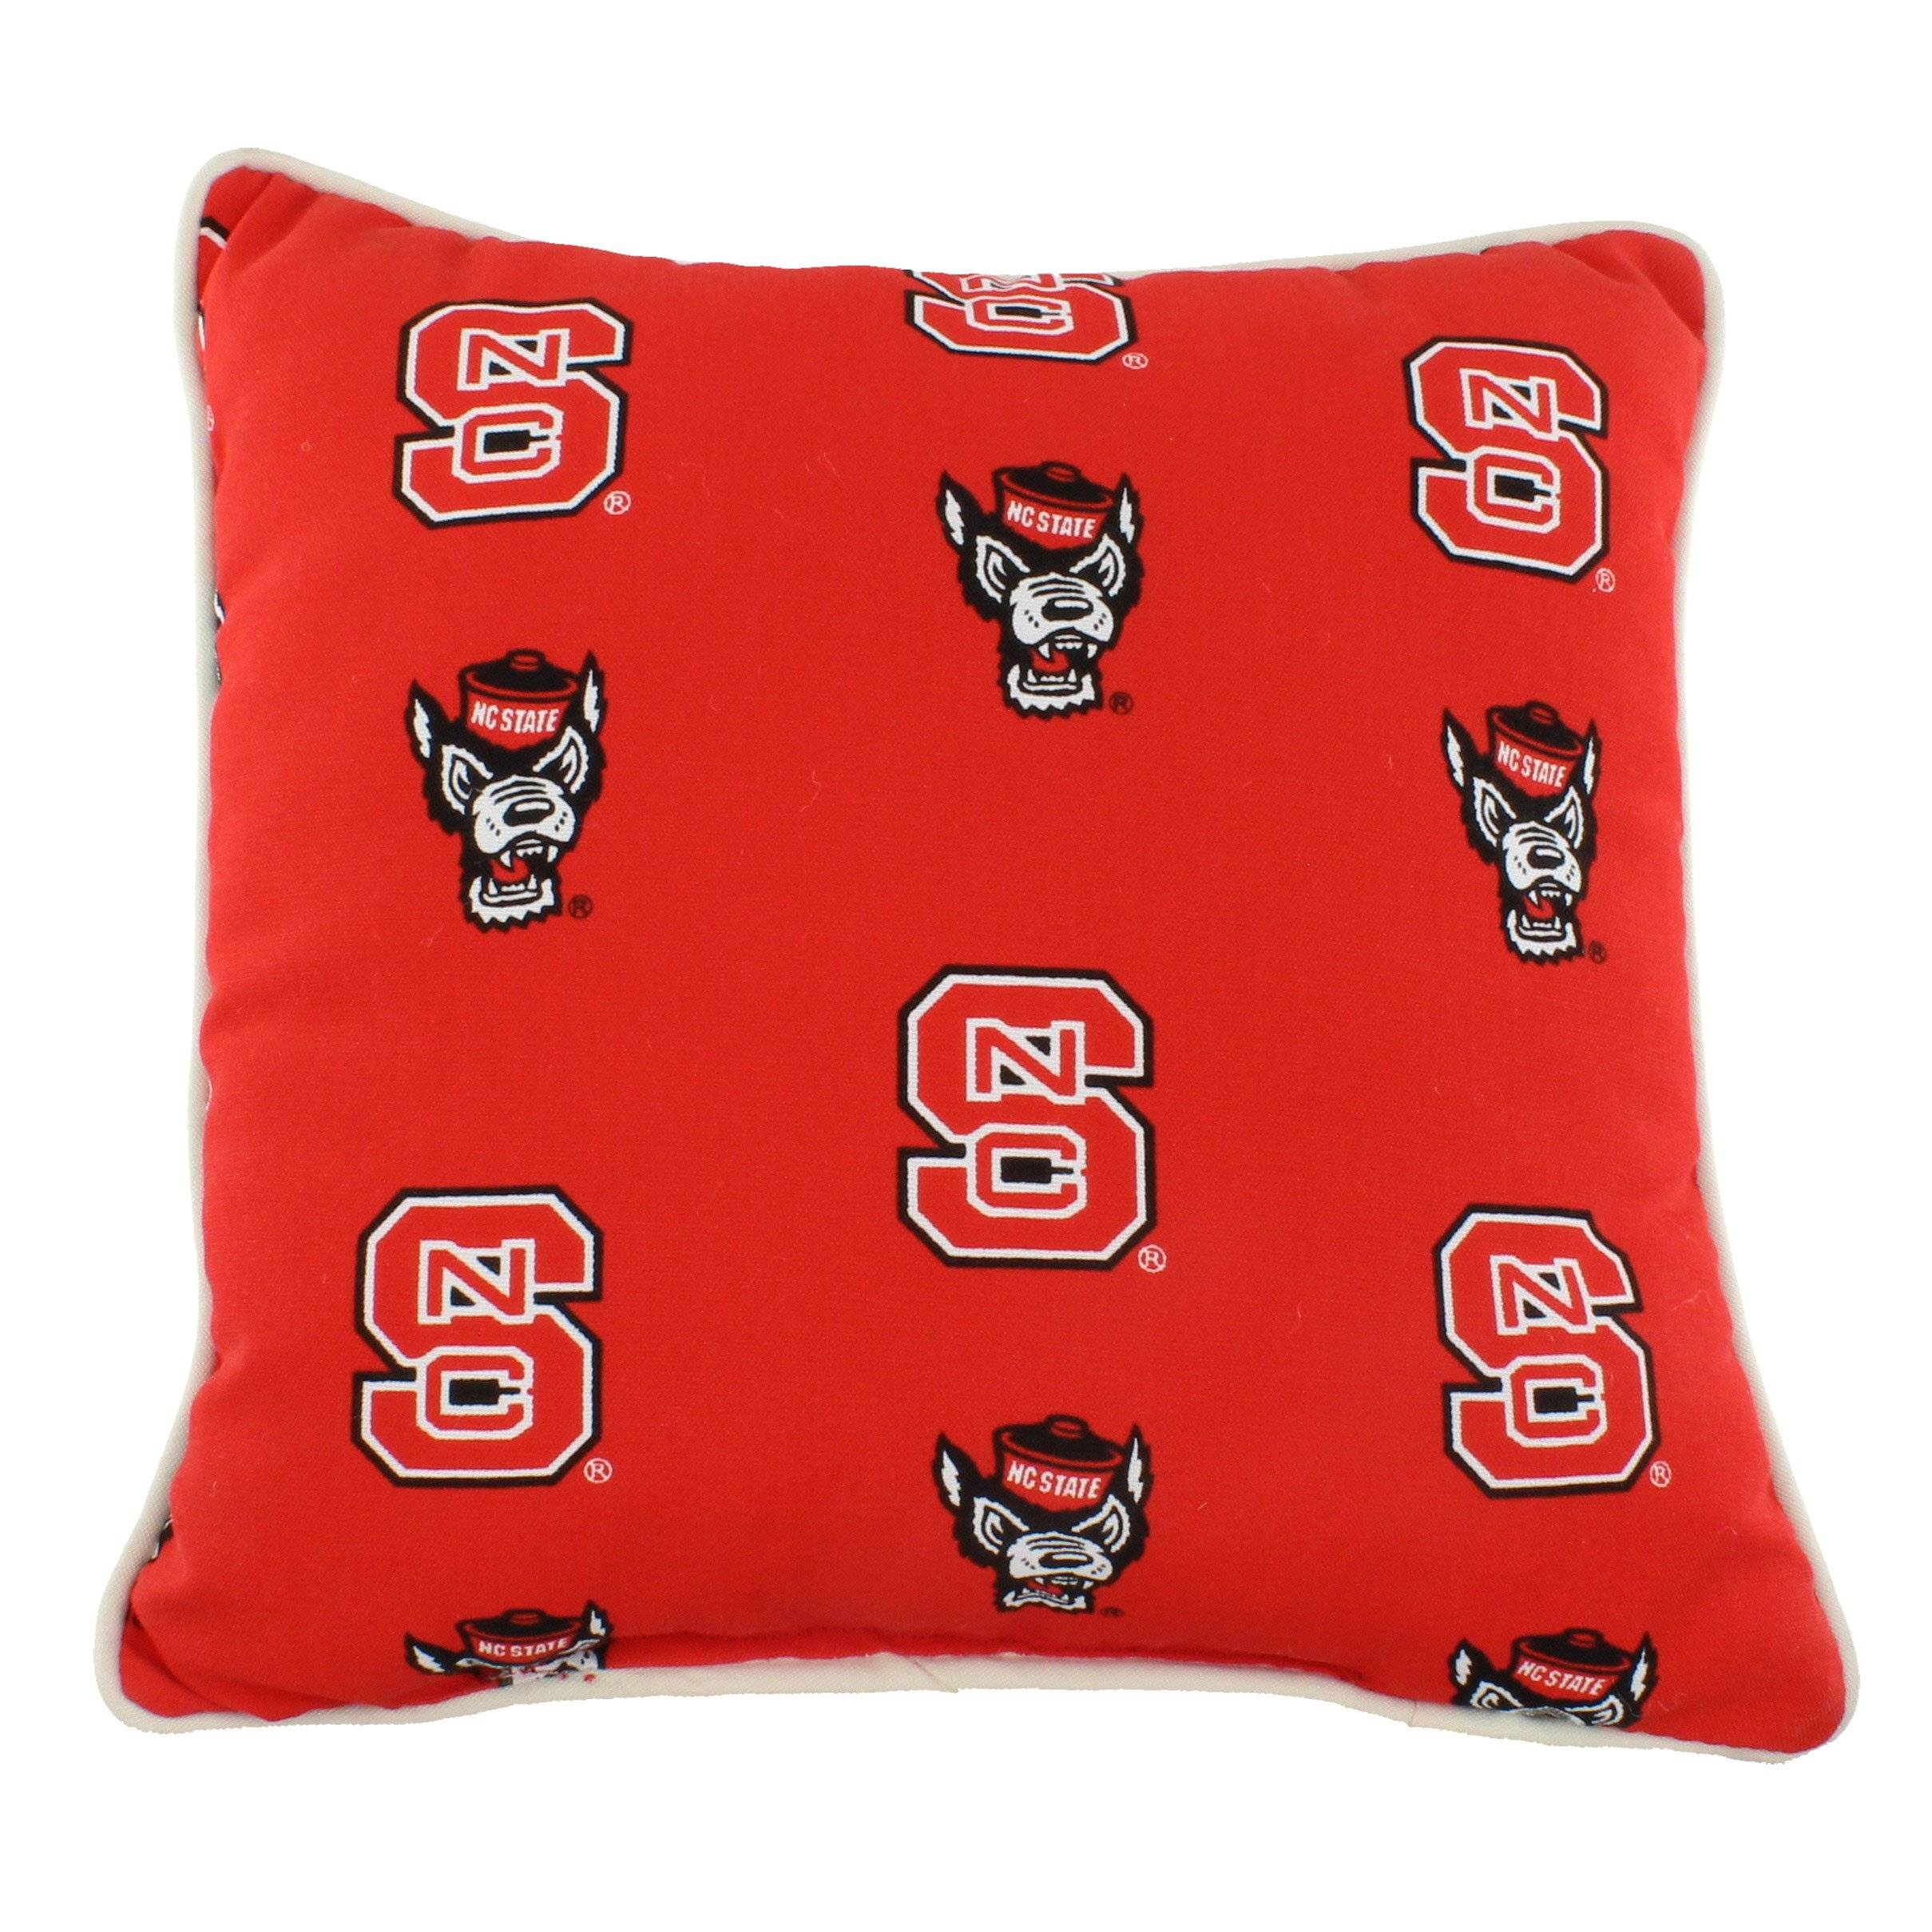 College Covers NCSODP North Carolina State Wolfpack Outdoor Decorative Pillow, 16'' x 16'', Red